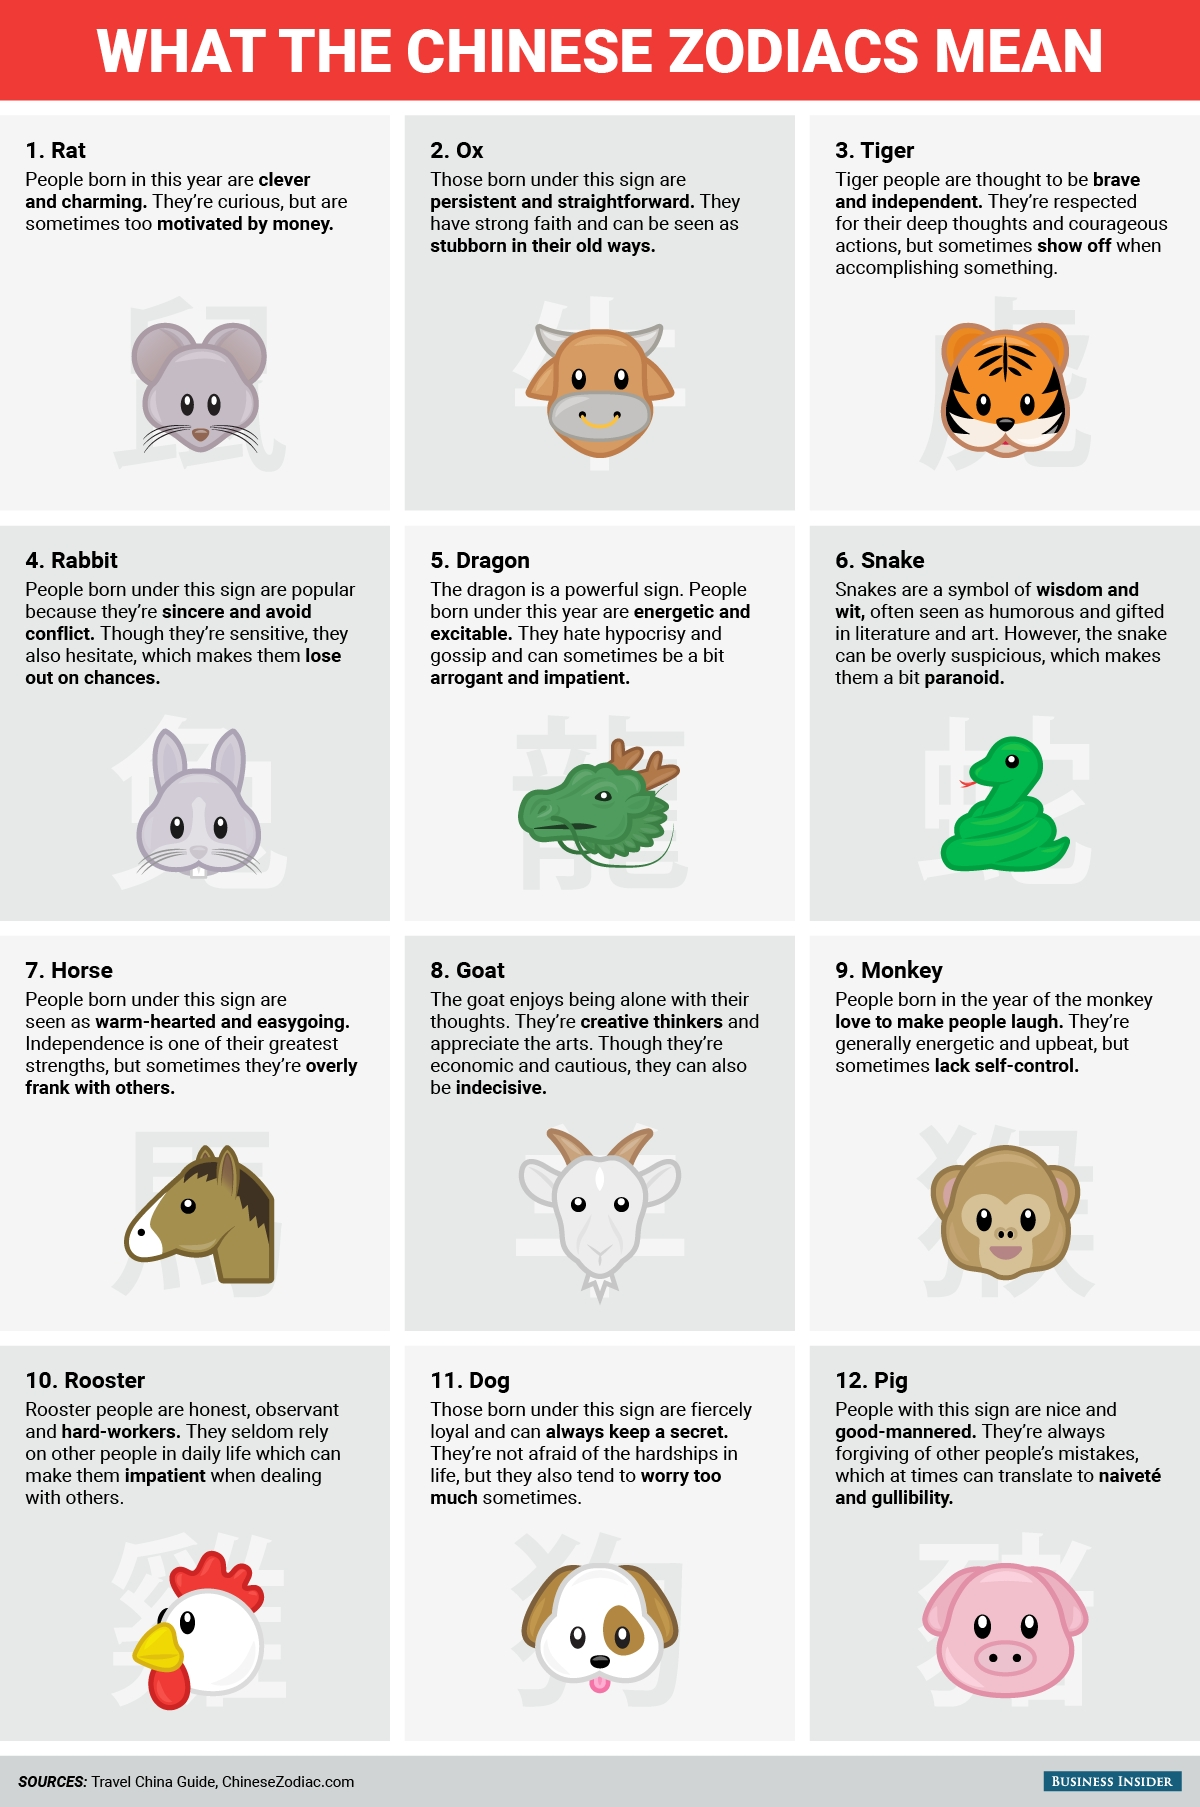 Happy Chinese New Year! This Is What The Chinese Zodiac Says About